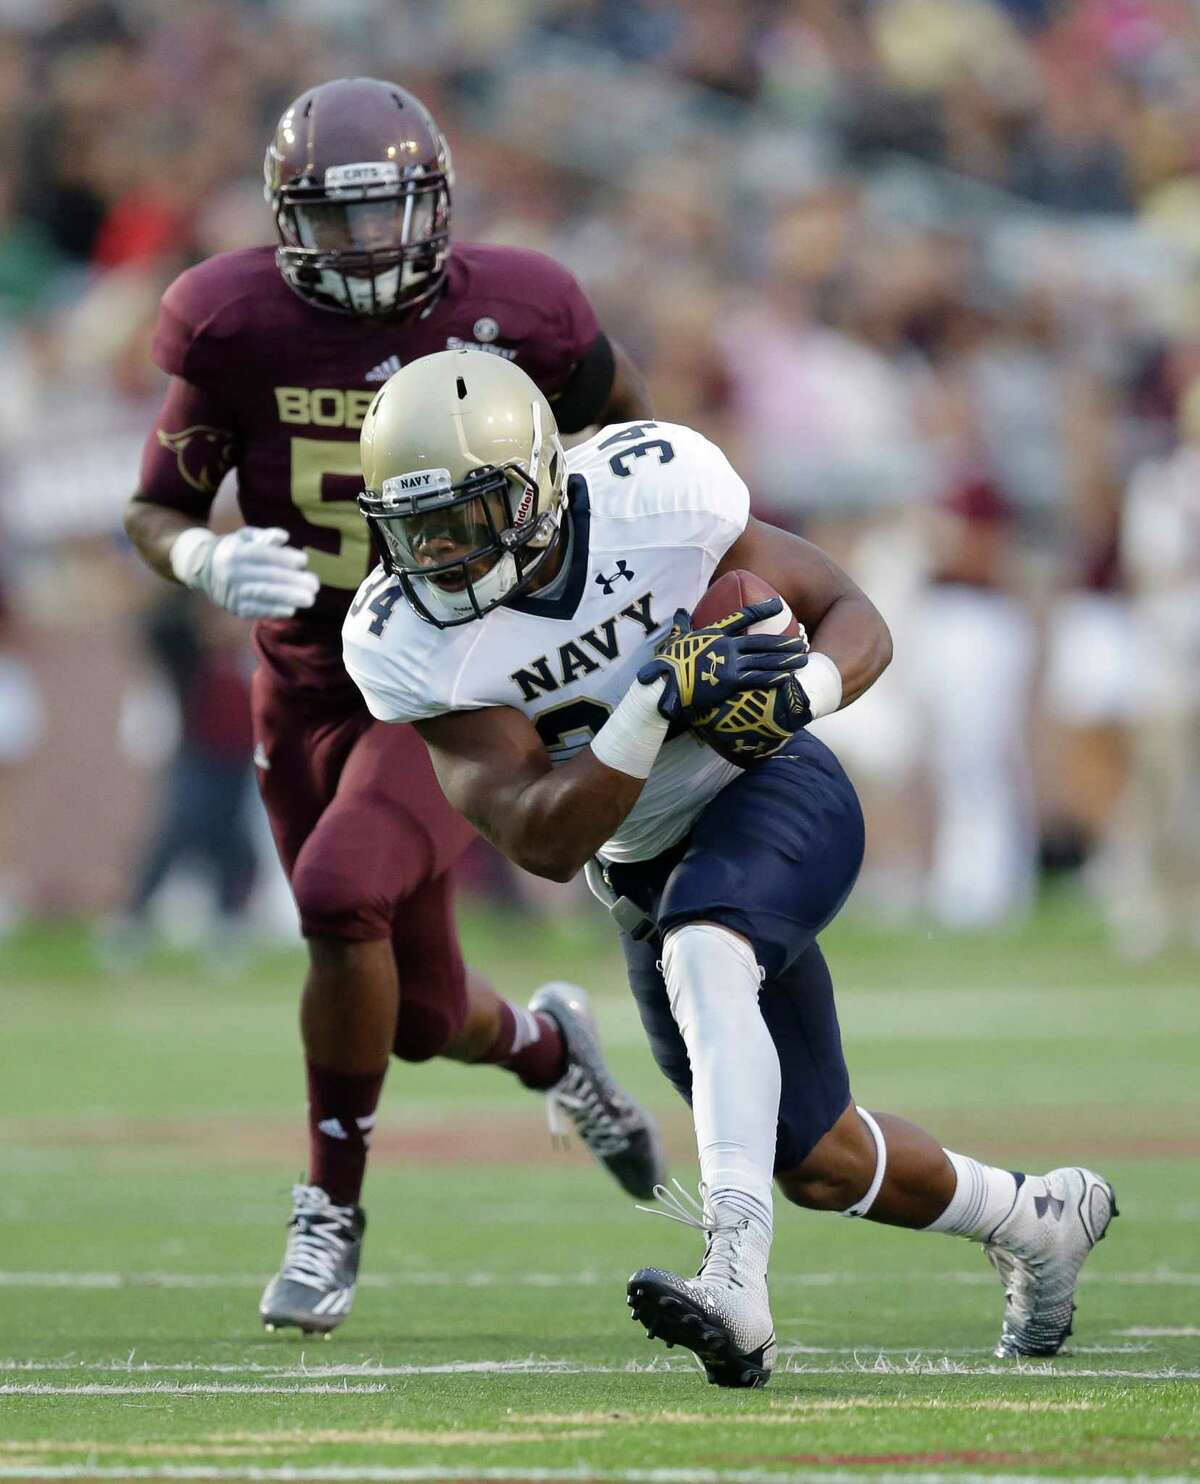 Navy 's Noah Copeland (34) breaks a tackle against Texas State during the first half of an NCAA college football game, Saturday, Sept. 13, 2014, in San Marcos, Texas.